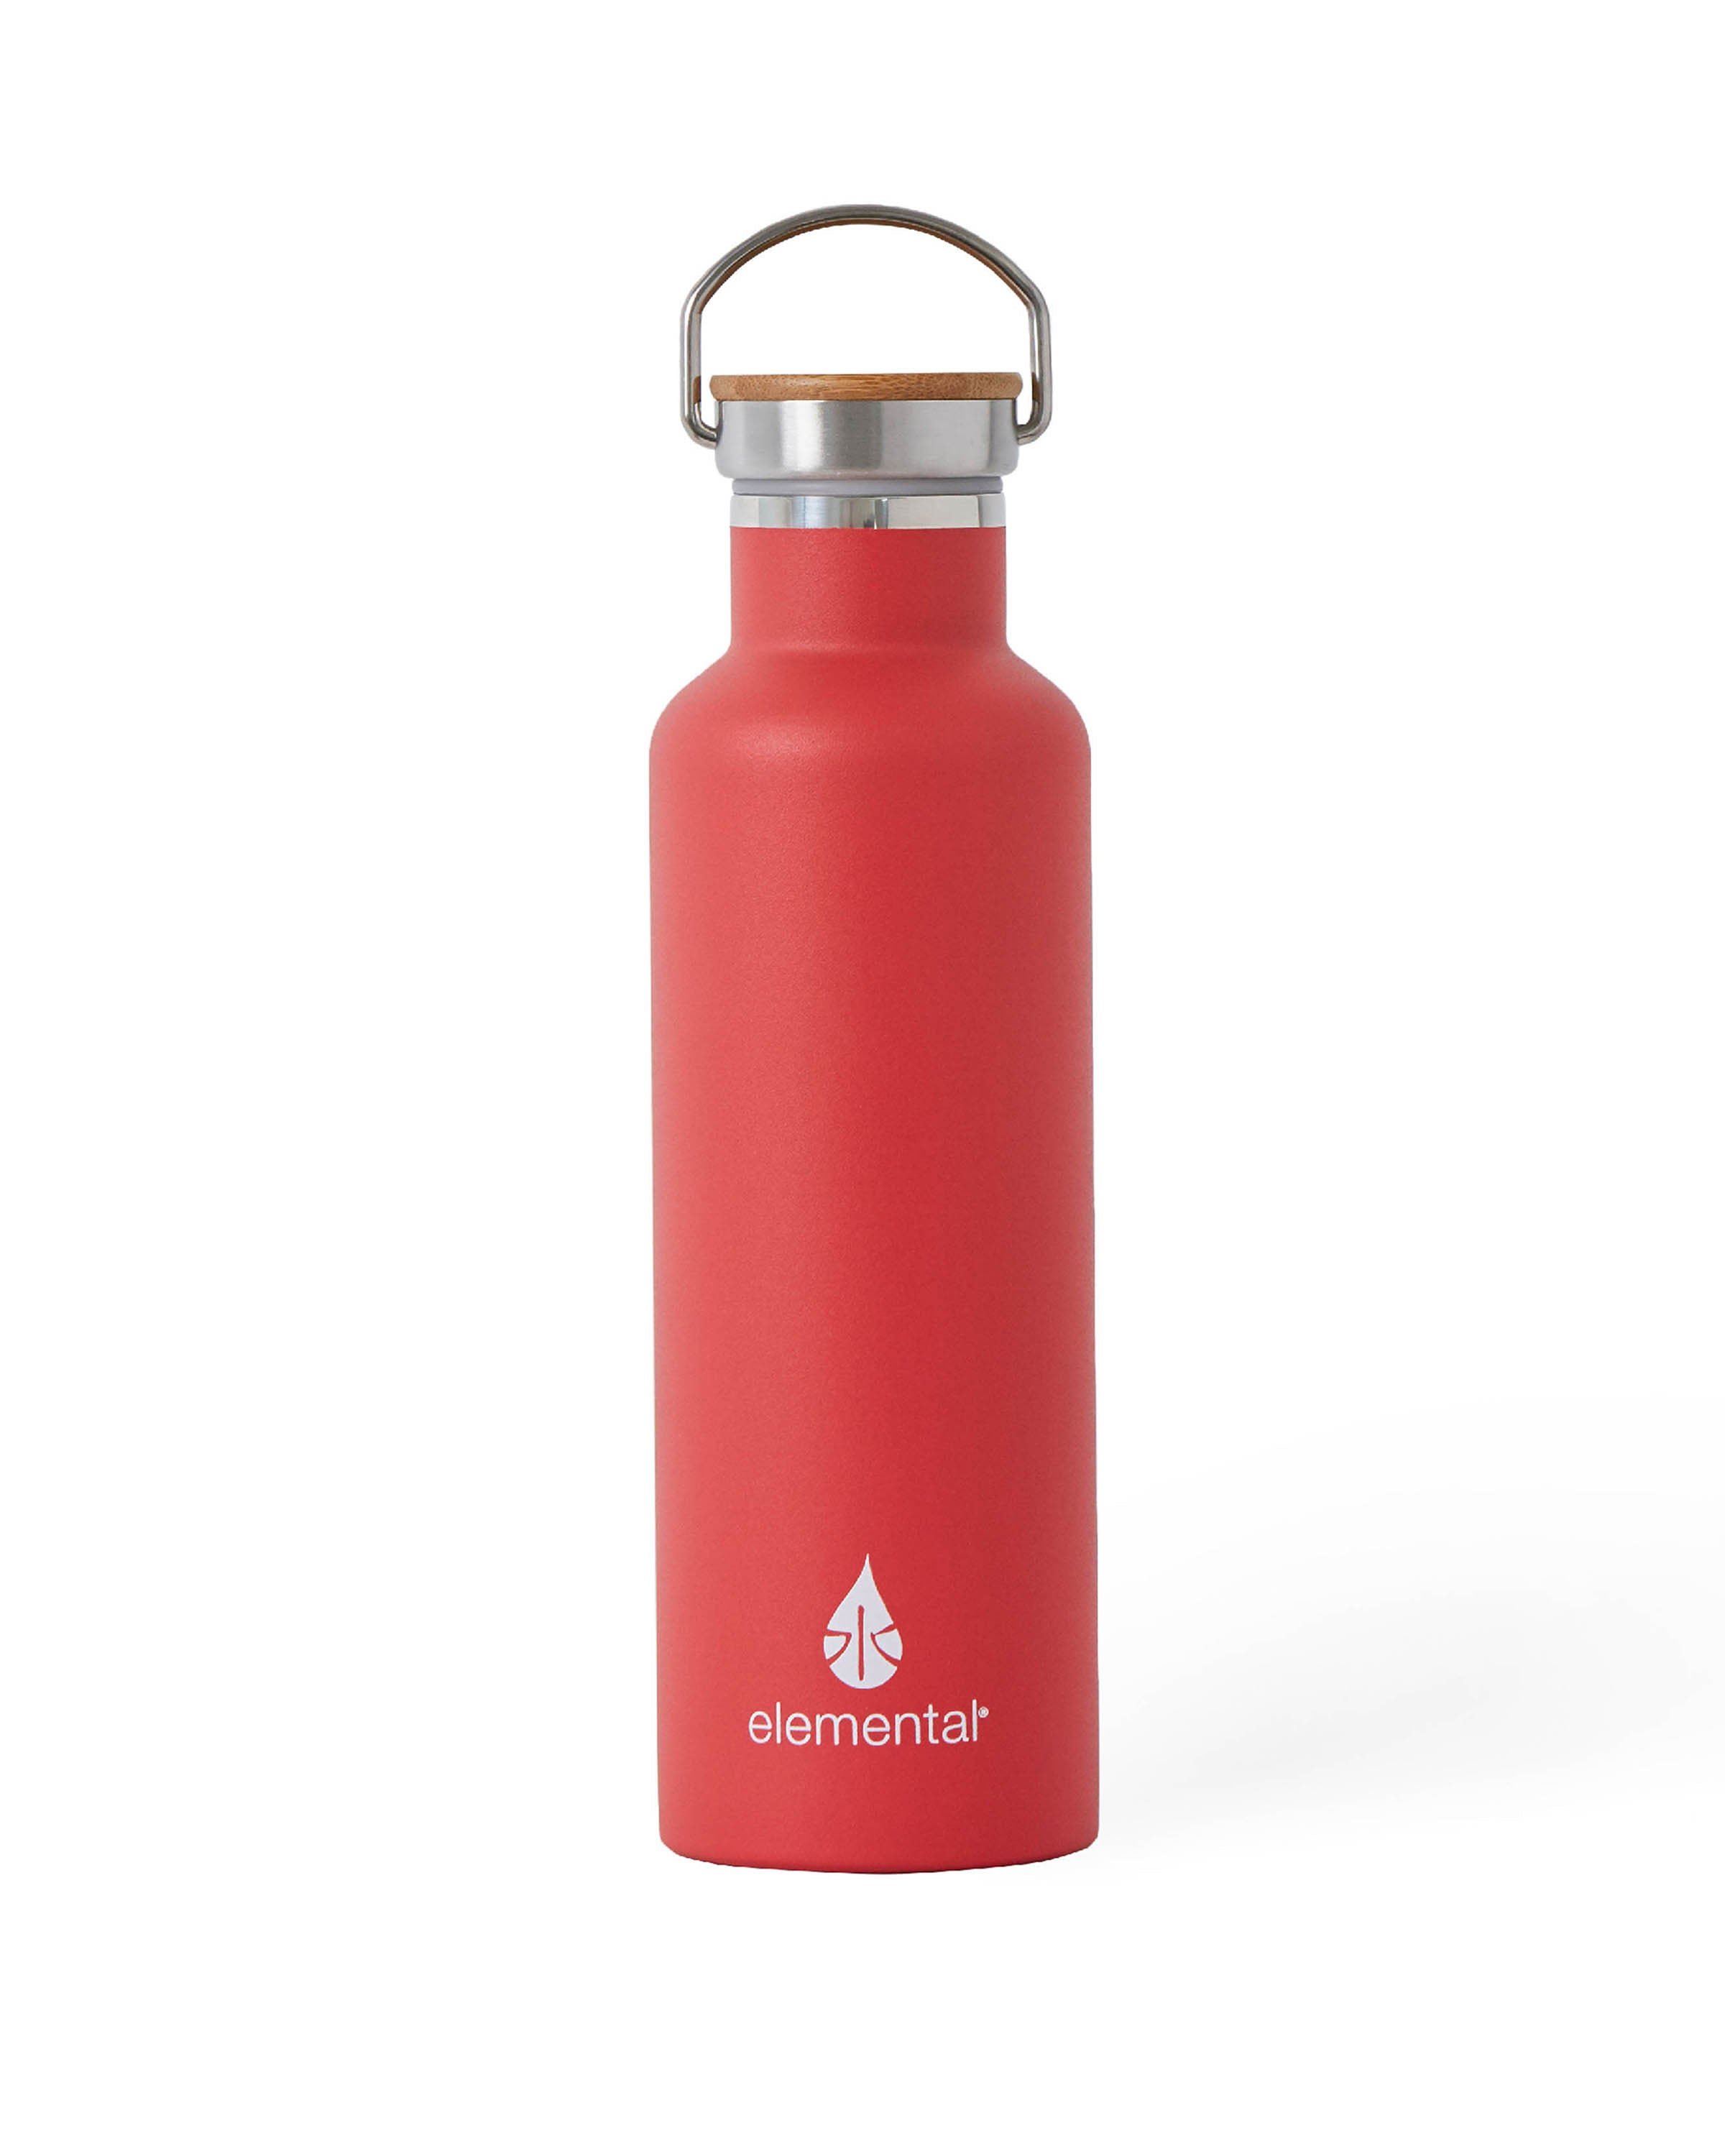 Elemental Stainless Steel Classic Water Bottle - 25oz Matte Red - Elemental Gifts